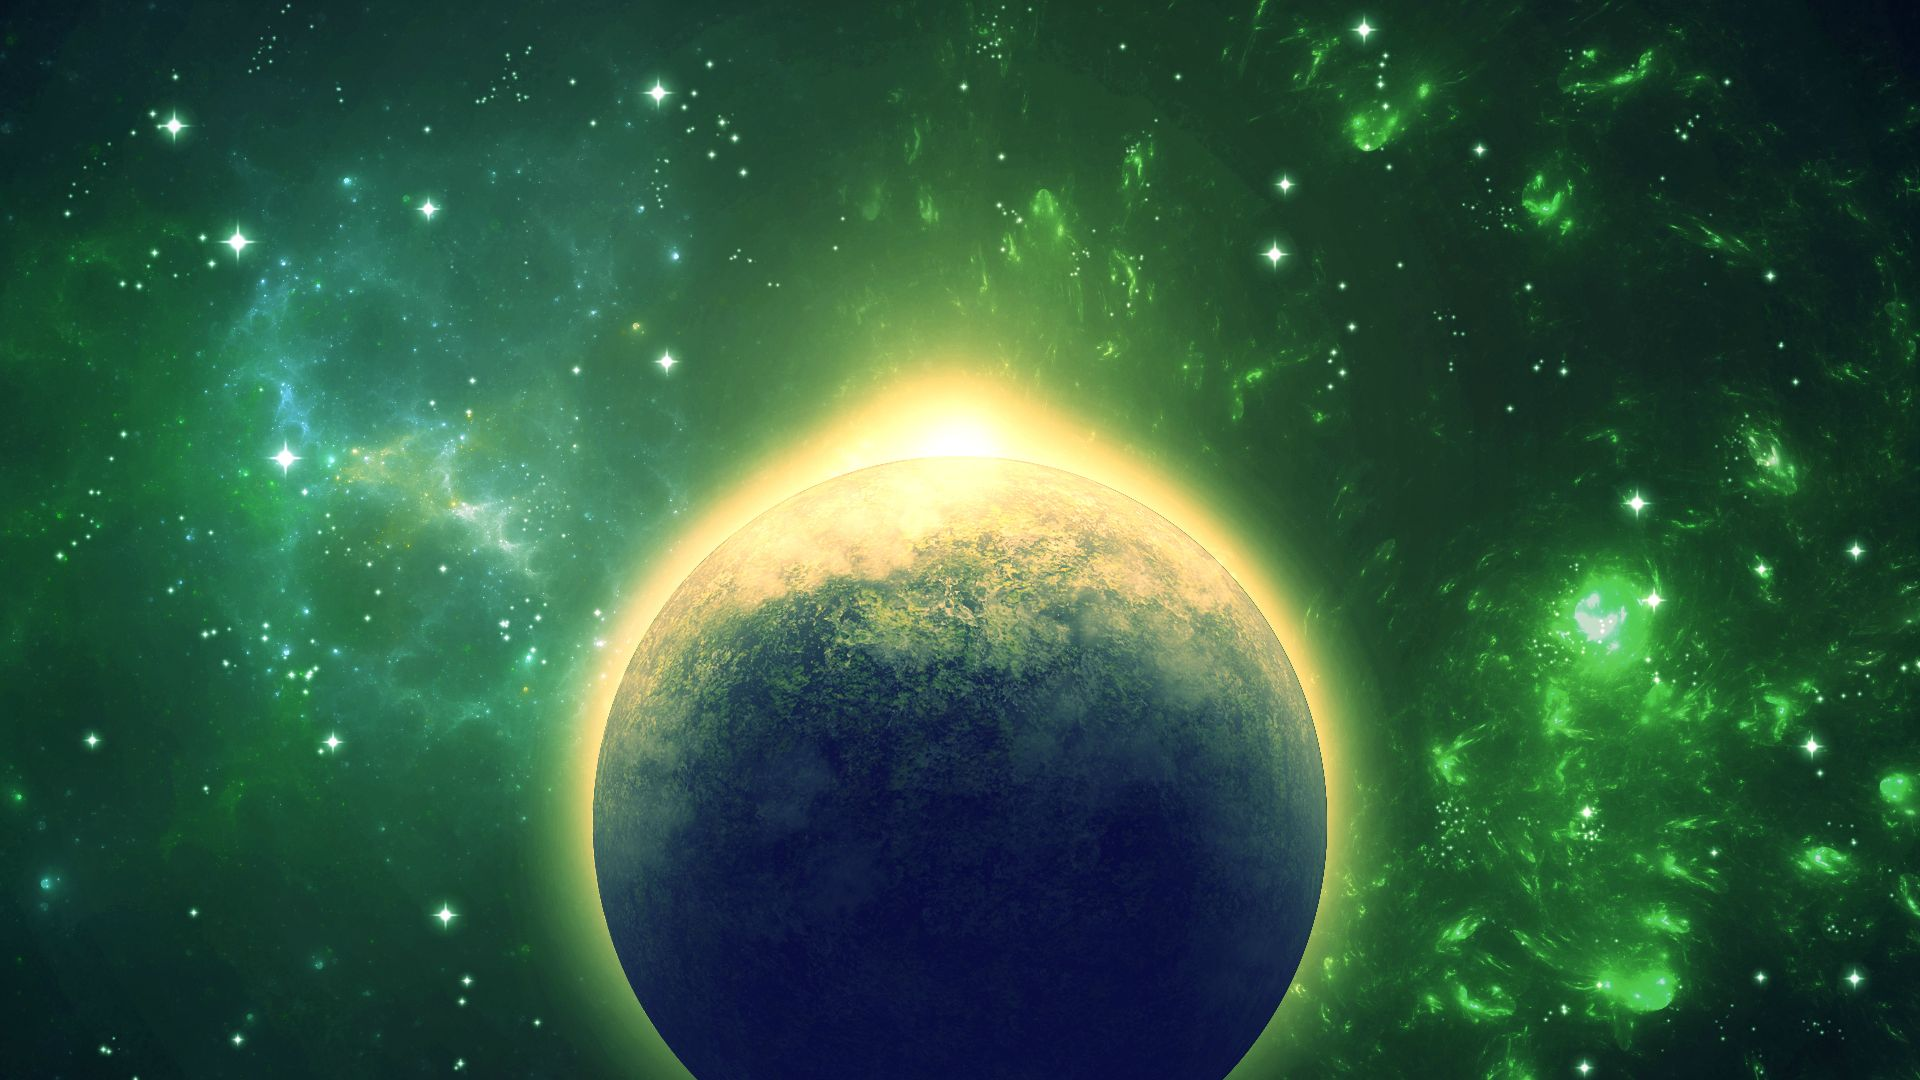 81 HD Cosmic wallpapers for your mobile devices 2OtvvcI